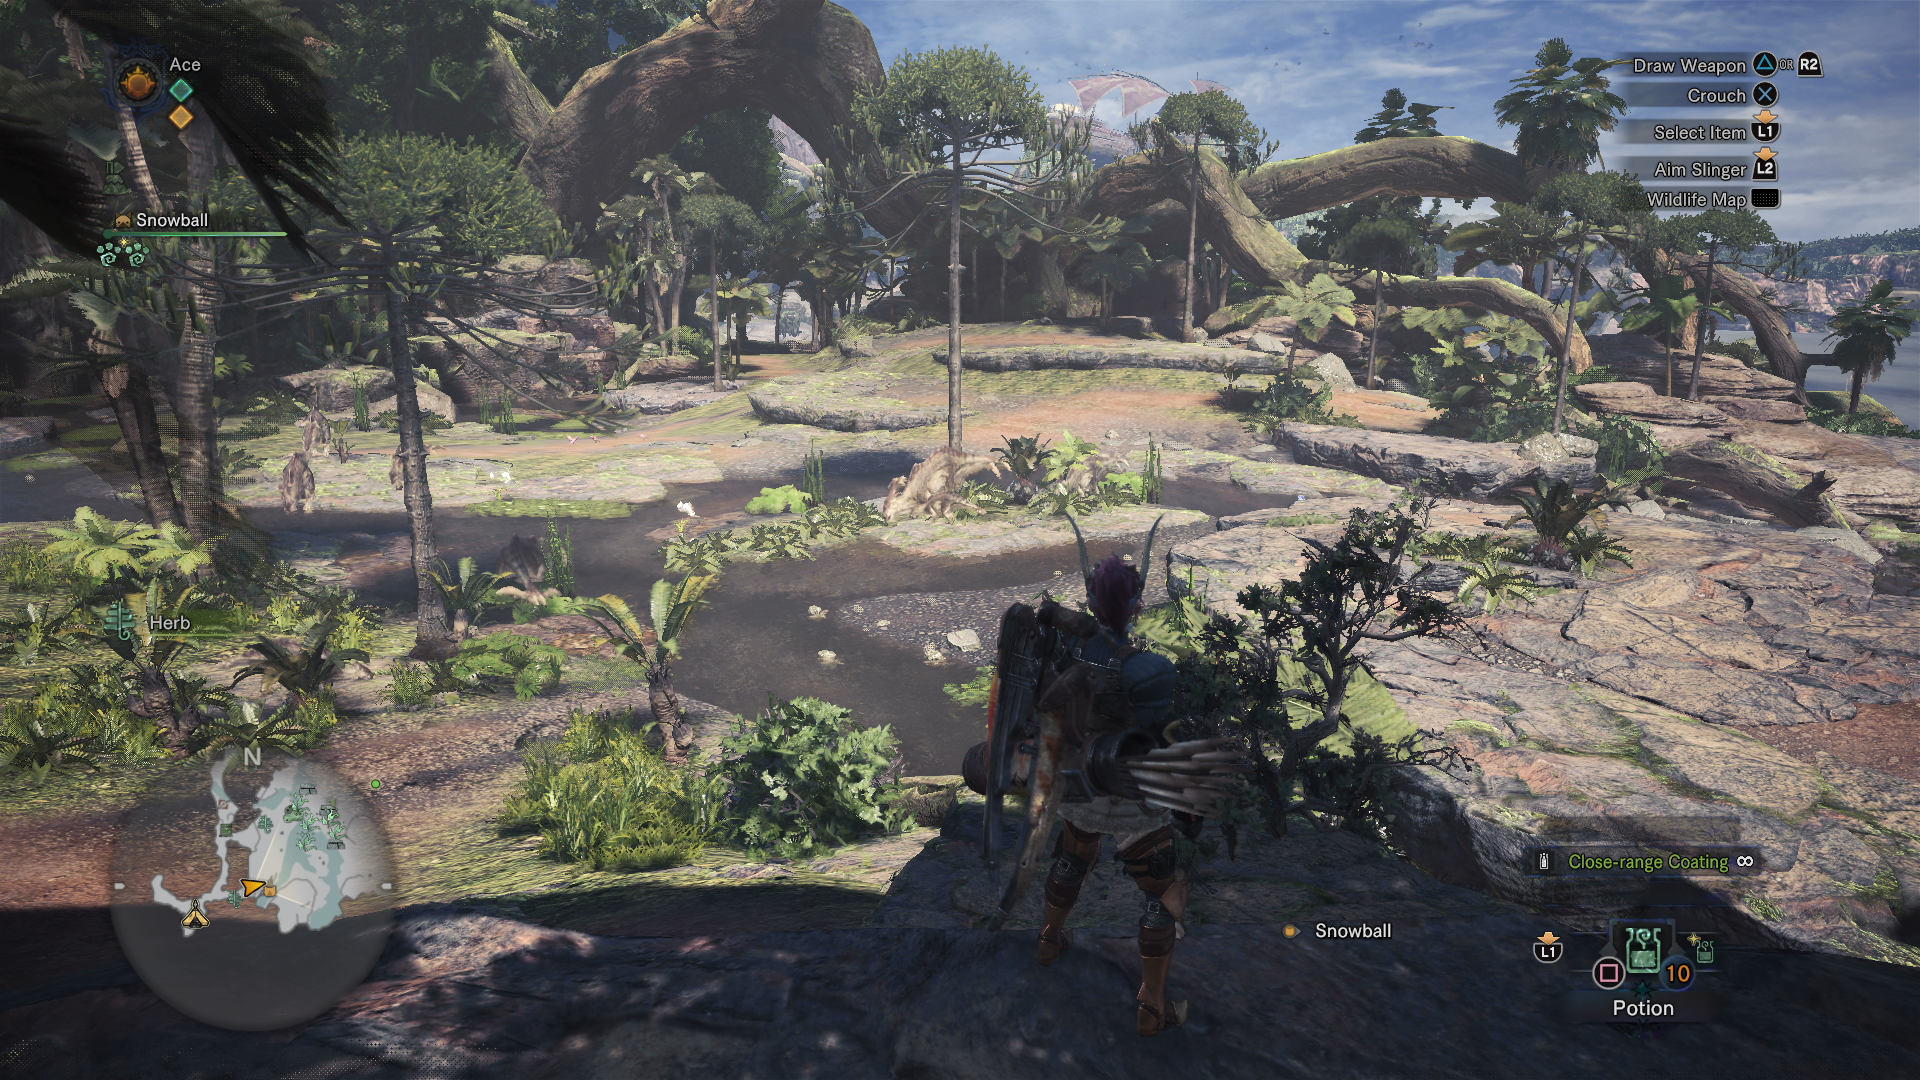 monster_hunter_world_ancient_forest_aptonoth